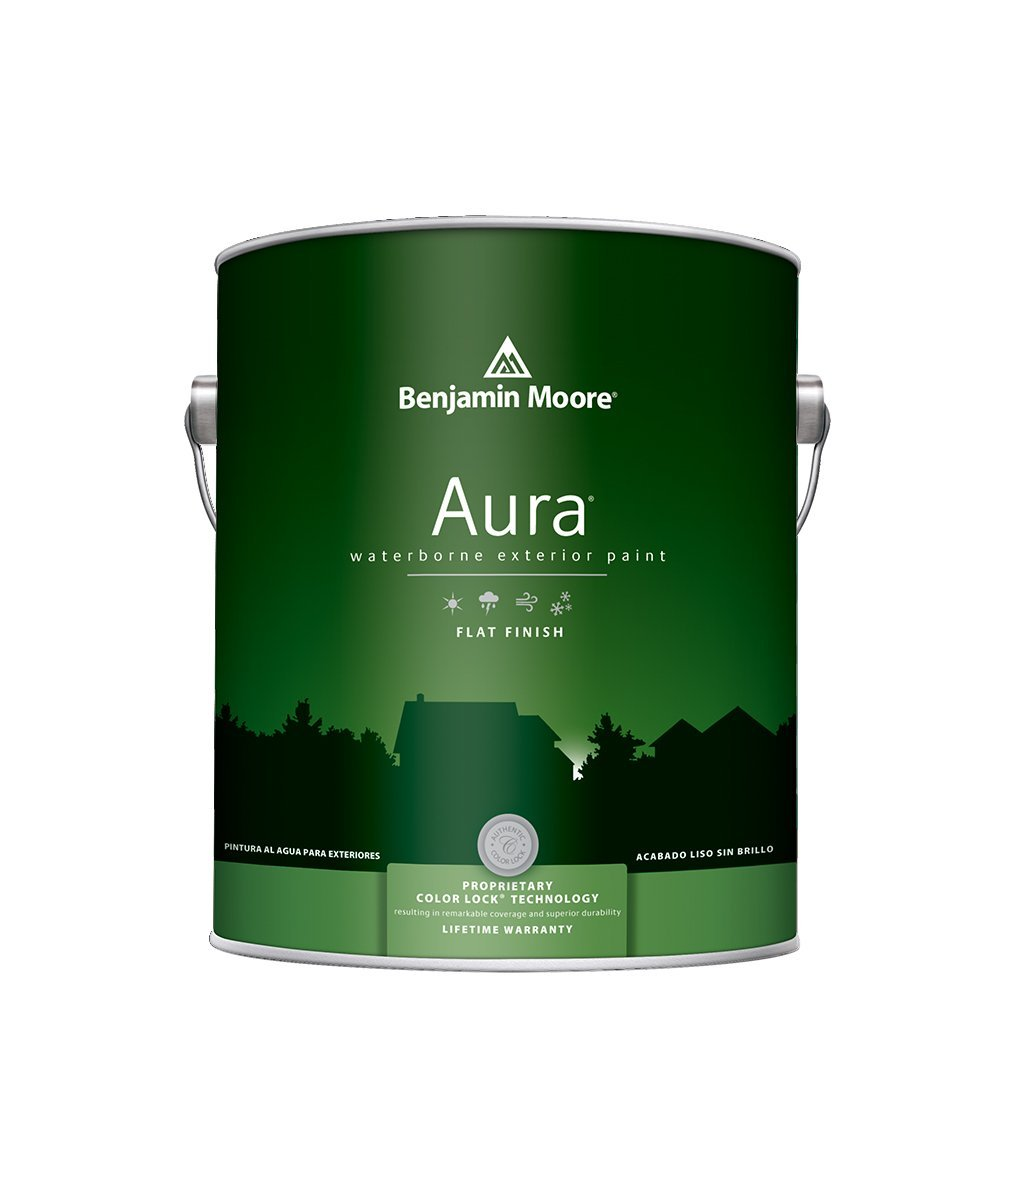 Benjamin Moore Aura Exterior Flat Paint available at Aboff's.